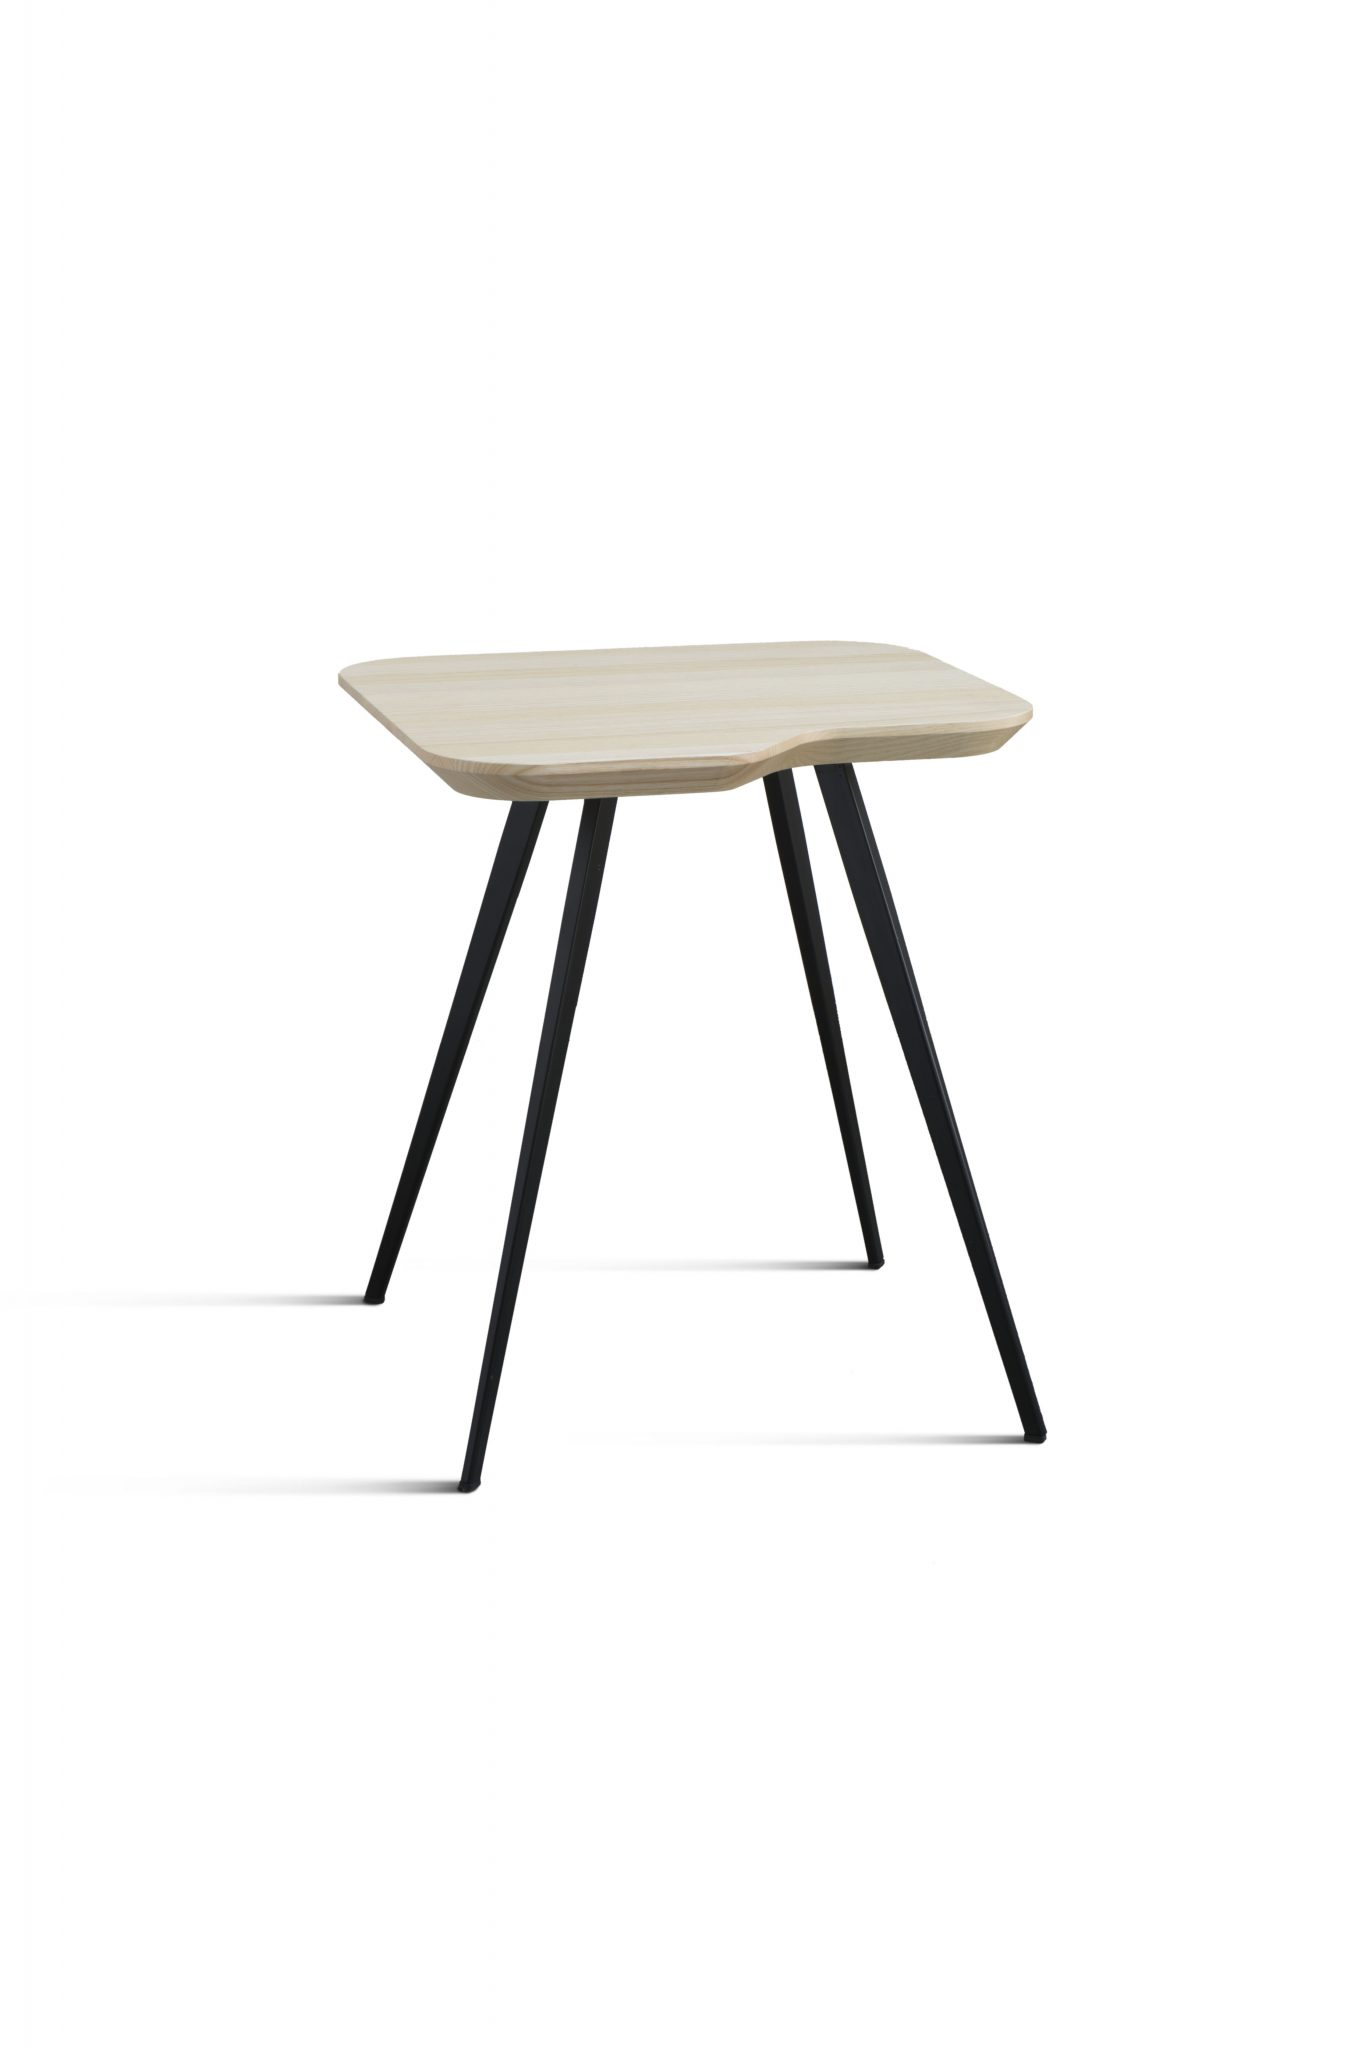 TABLE SMALL TABLE MET